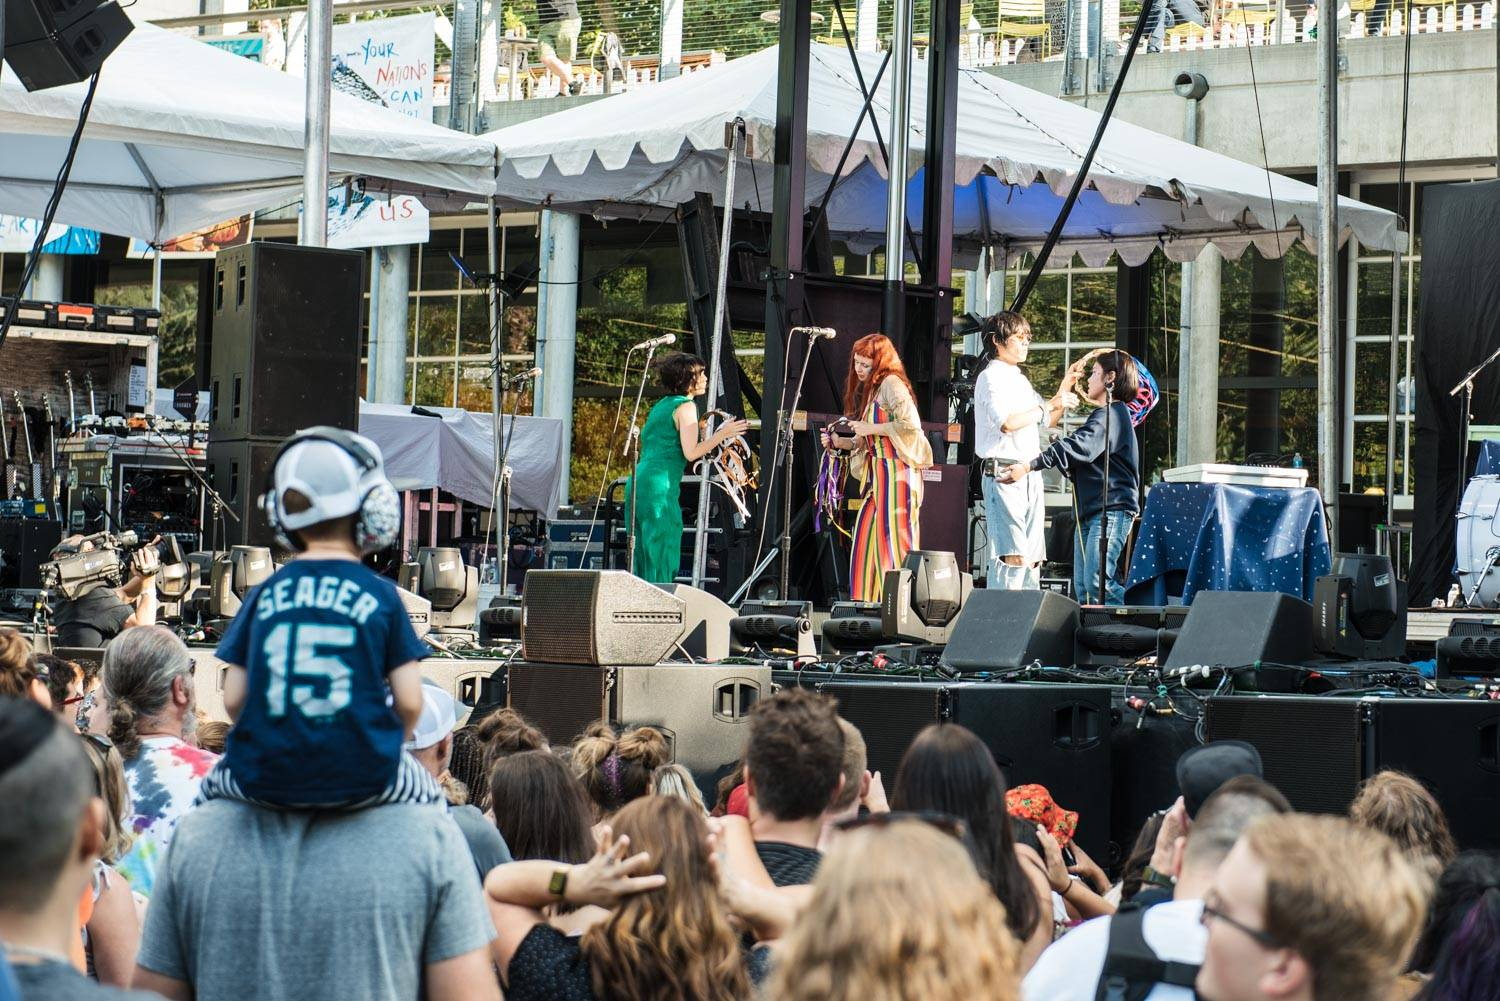 Superorganism at the Bumbershoot Music Festival 2018 - Day 2. Sept 1 2018. Pavel Boiko photo.